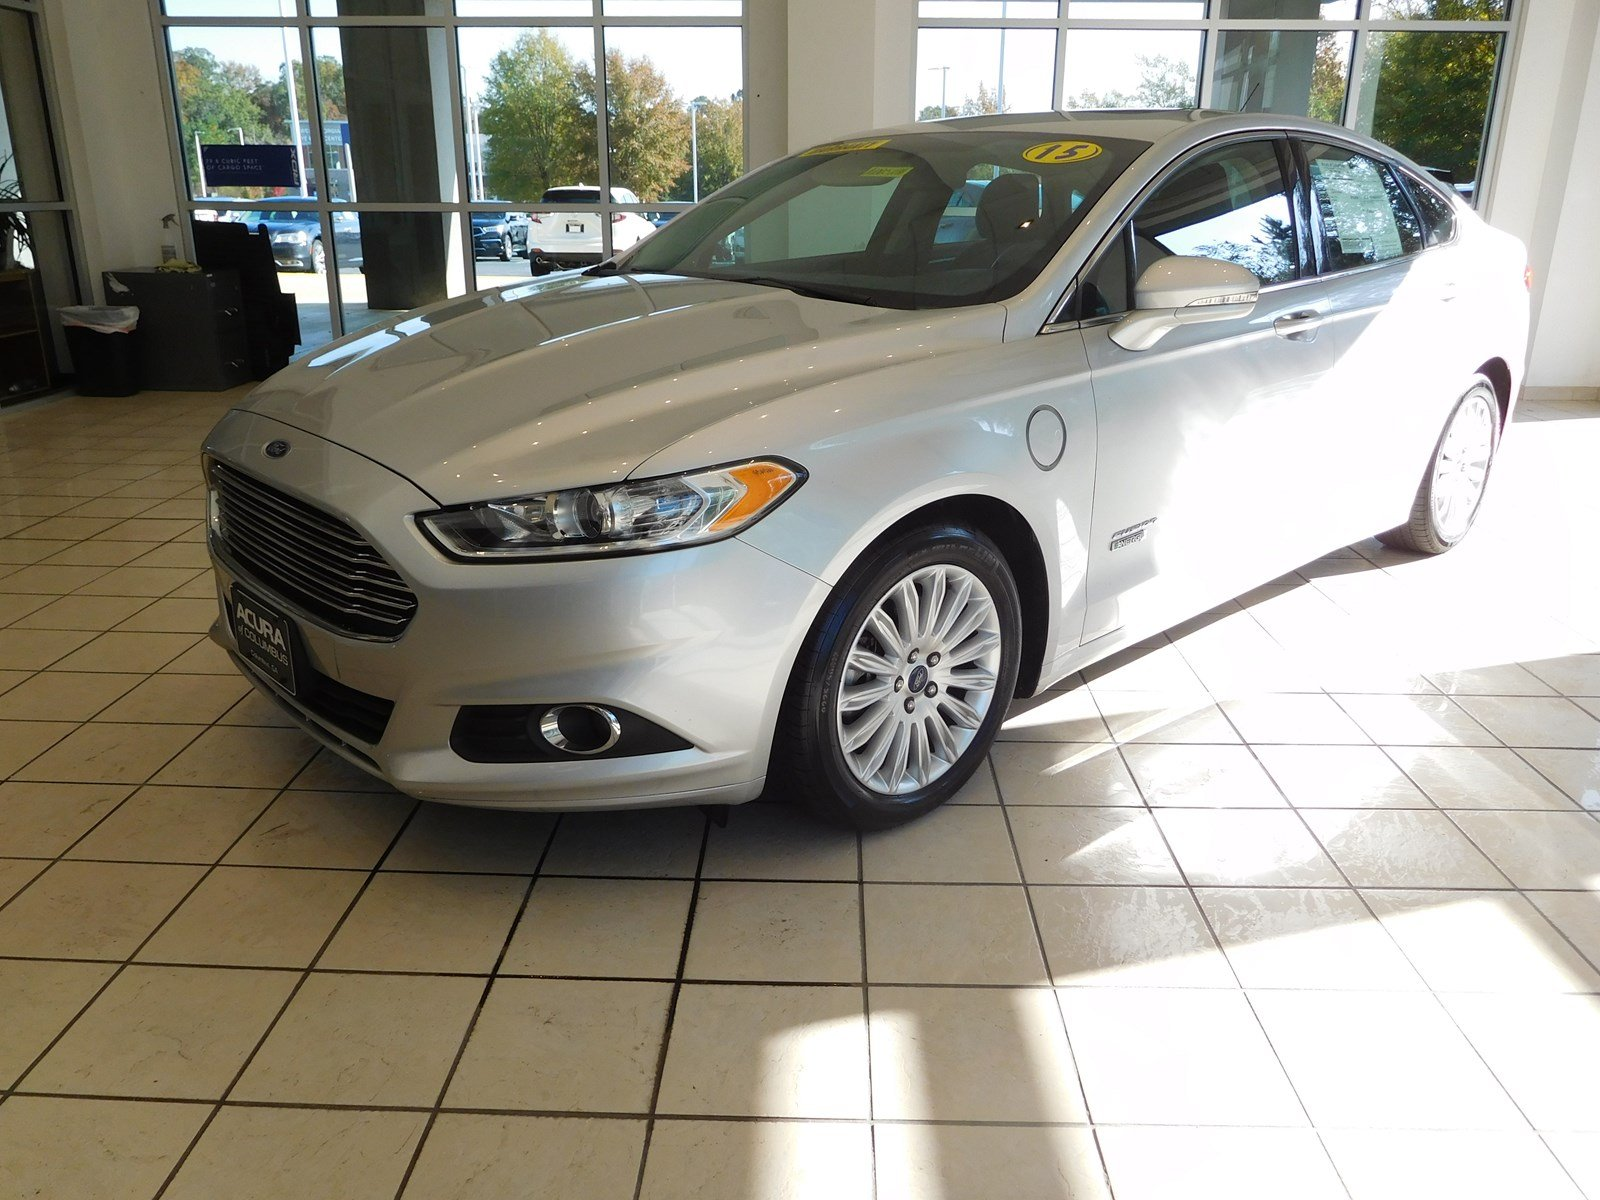 Pre Owned 2015 Ford Fusion Energi SE Luxury 4dr Car in Columbus